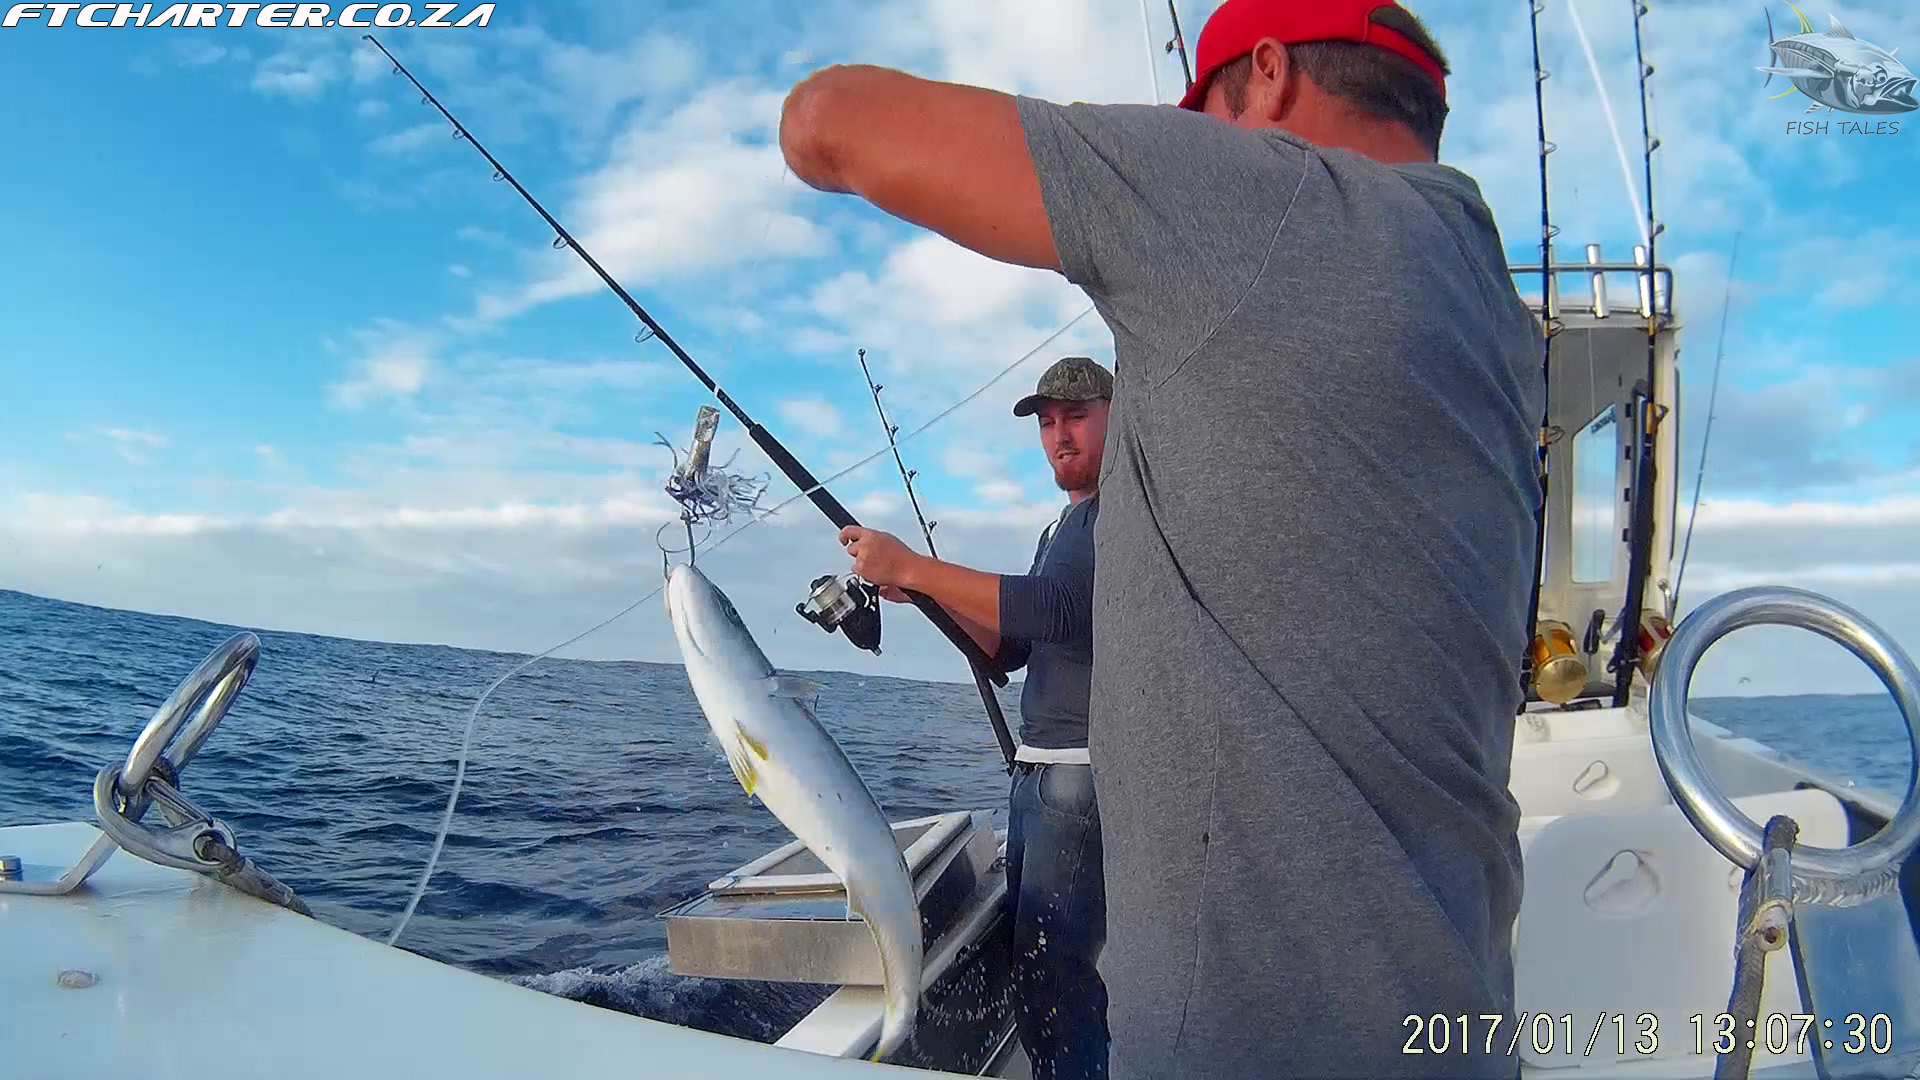 Yellowtail kona2 fish tales charters for Fish tales charters